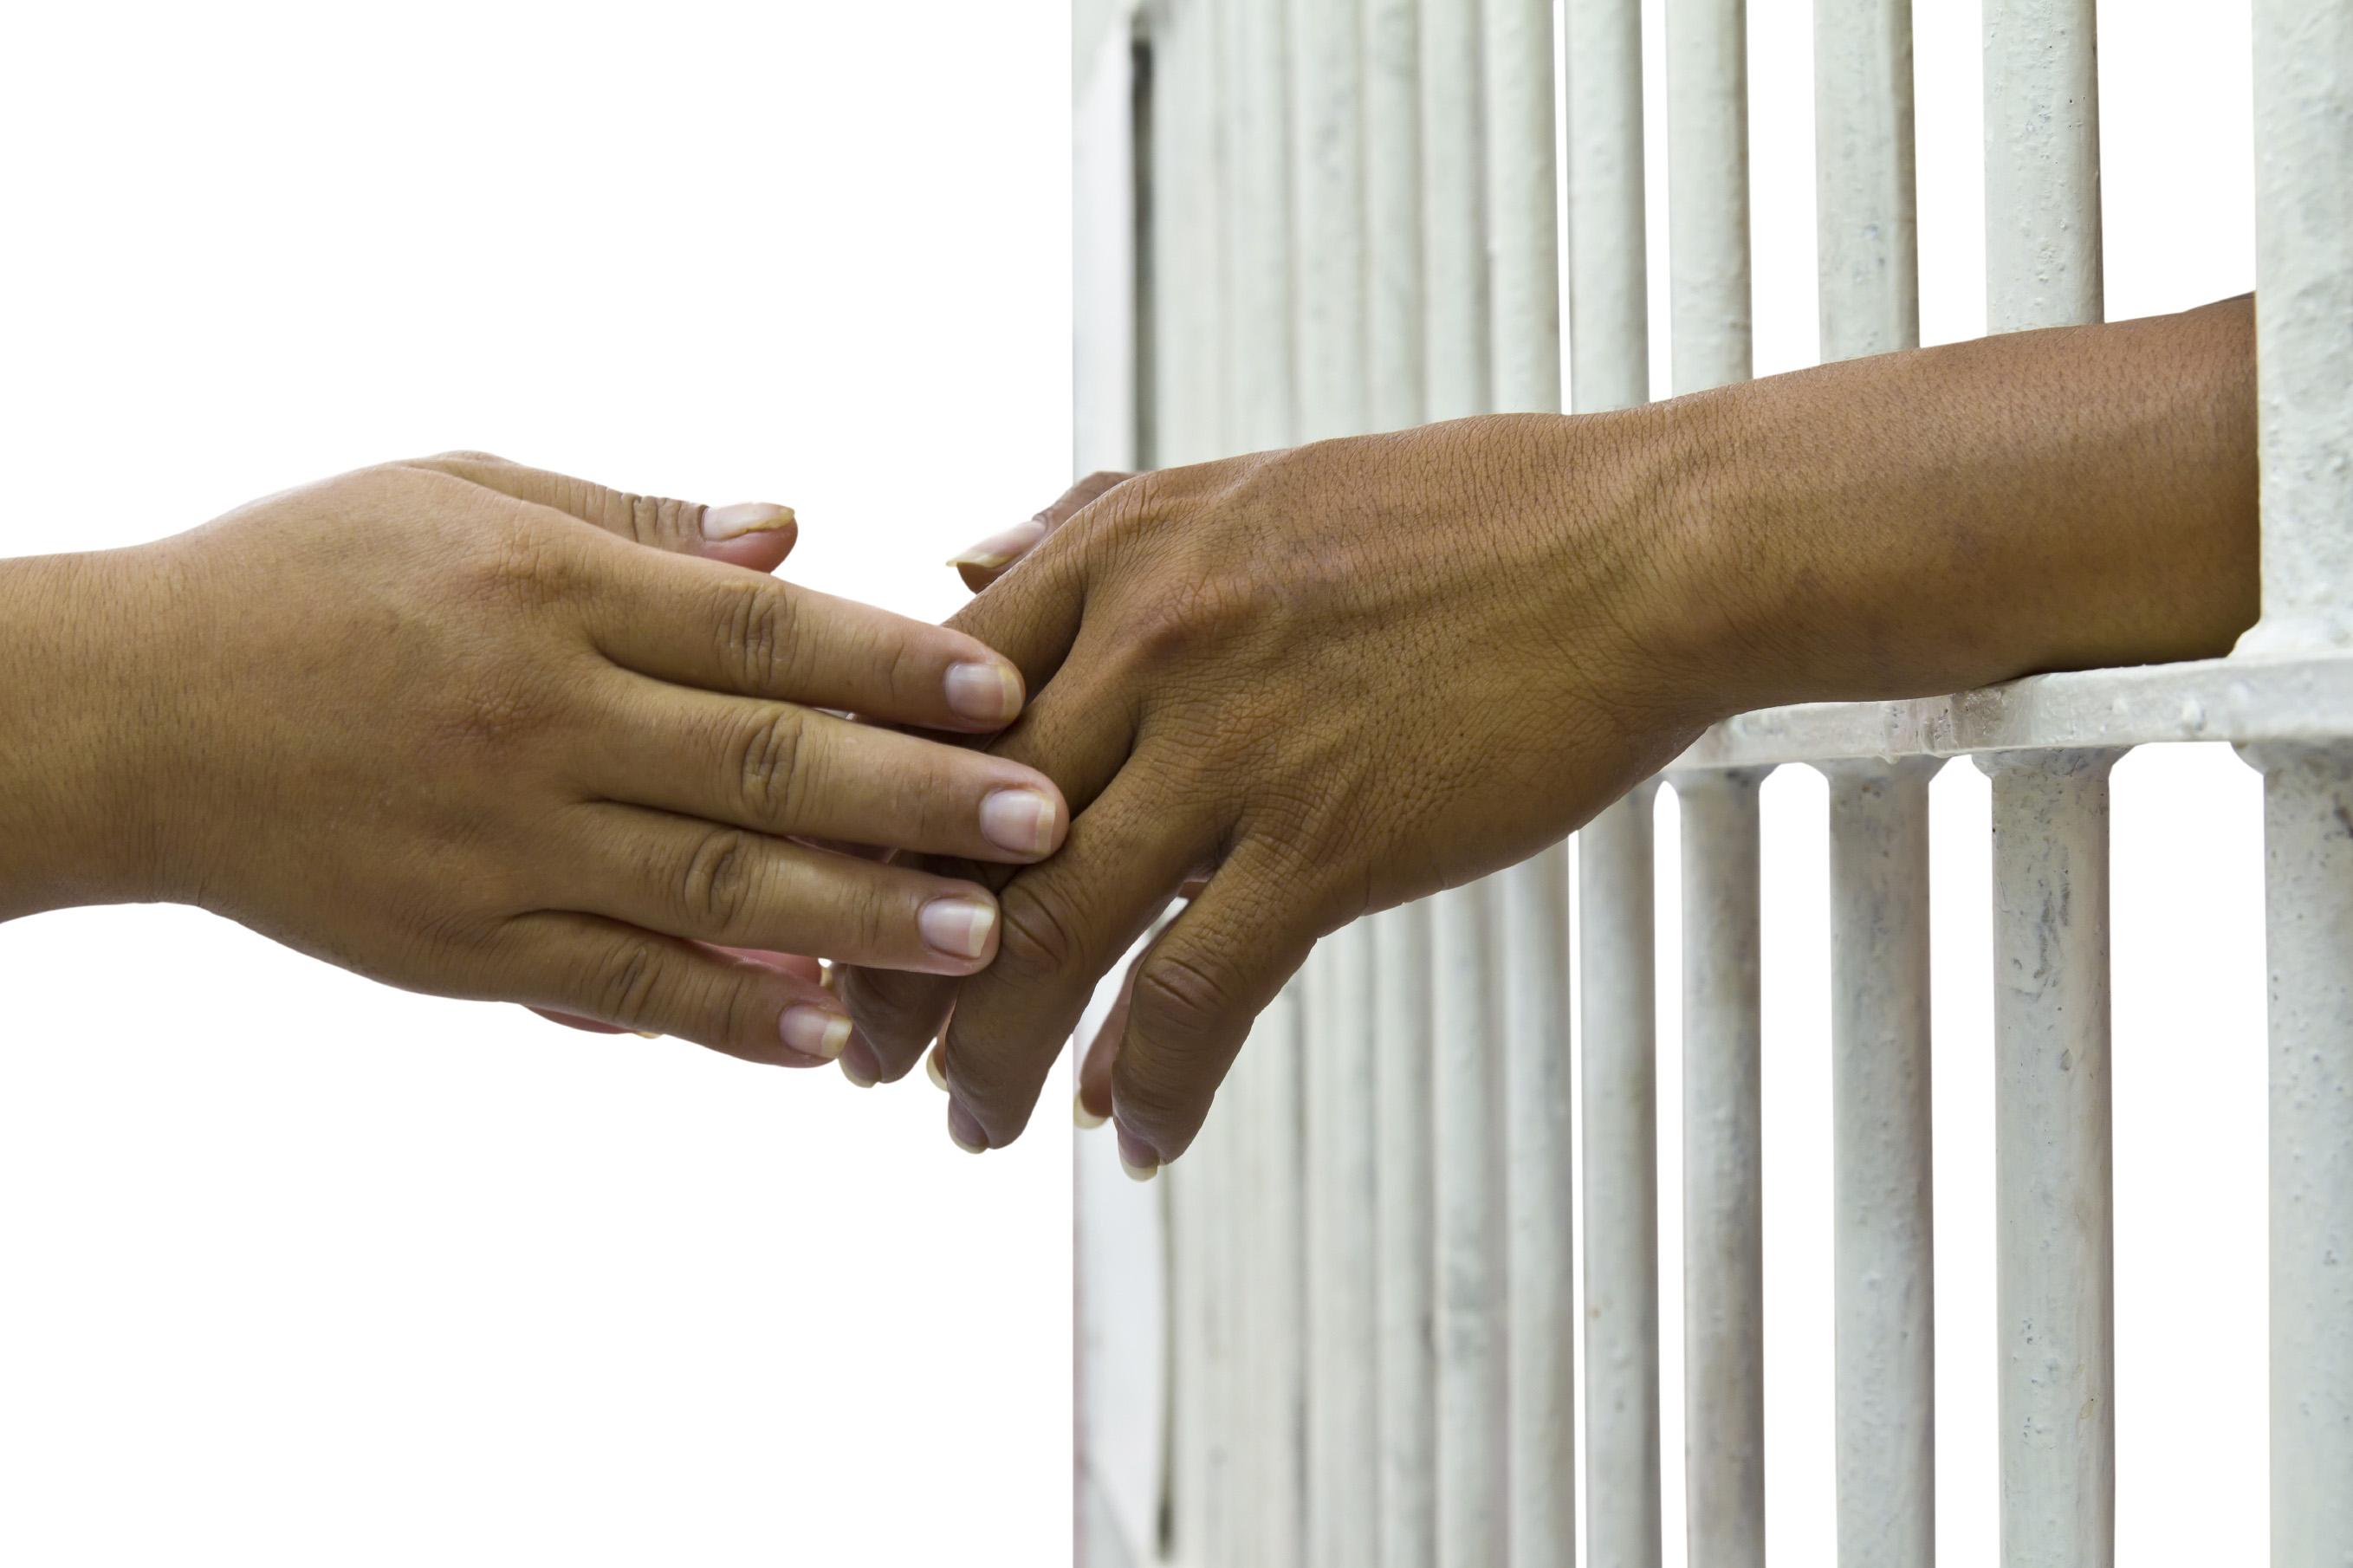 Two hands reach for one another through the bars of a prison cell.